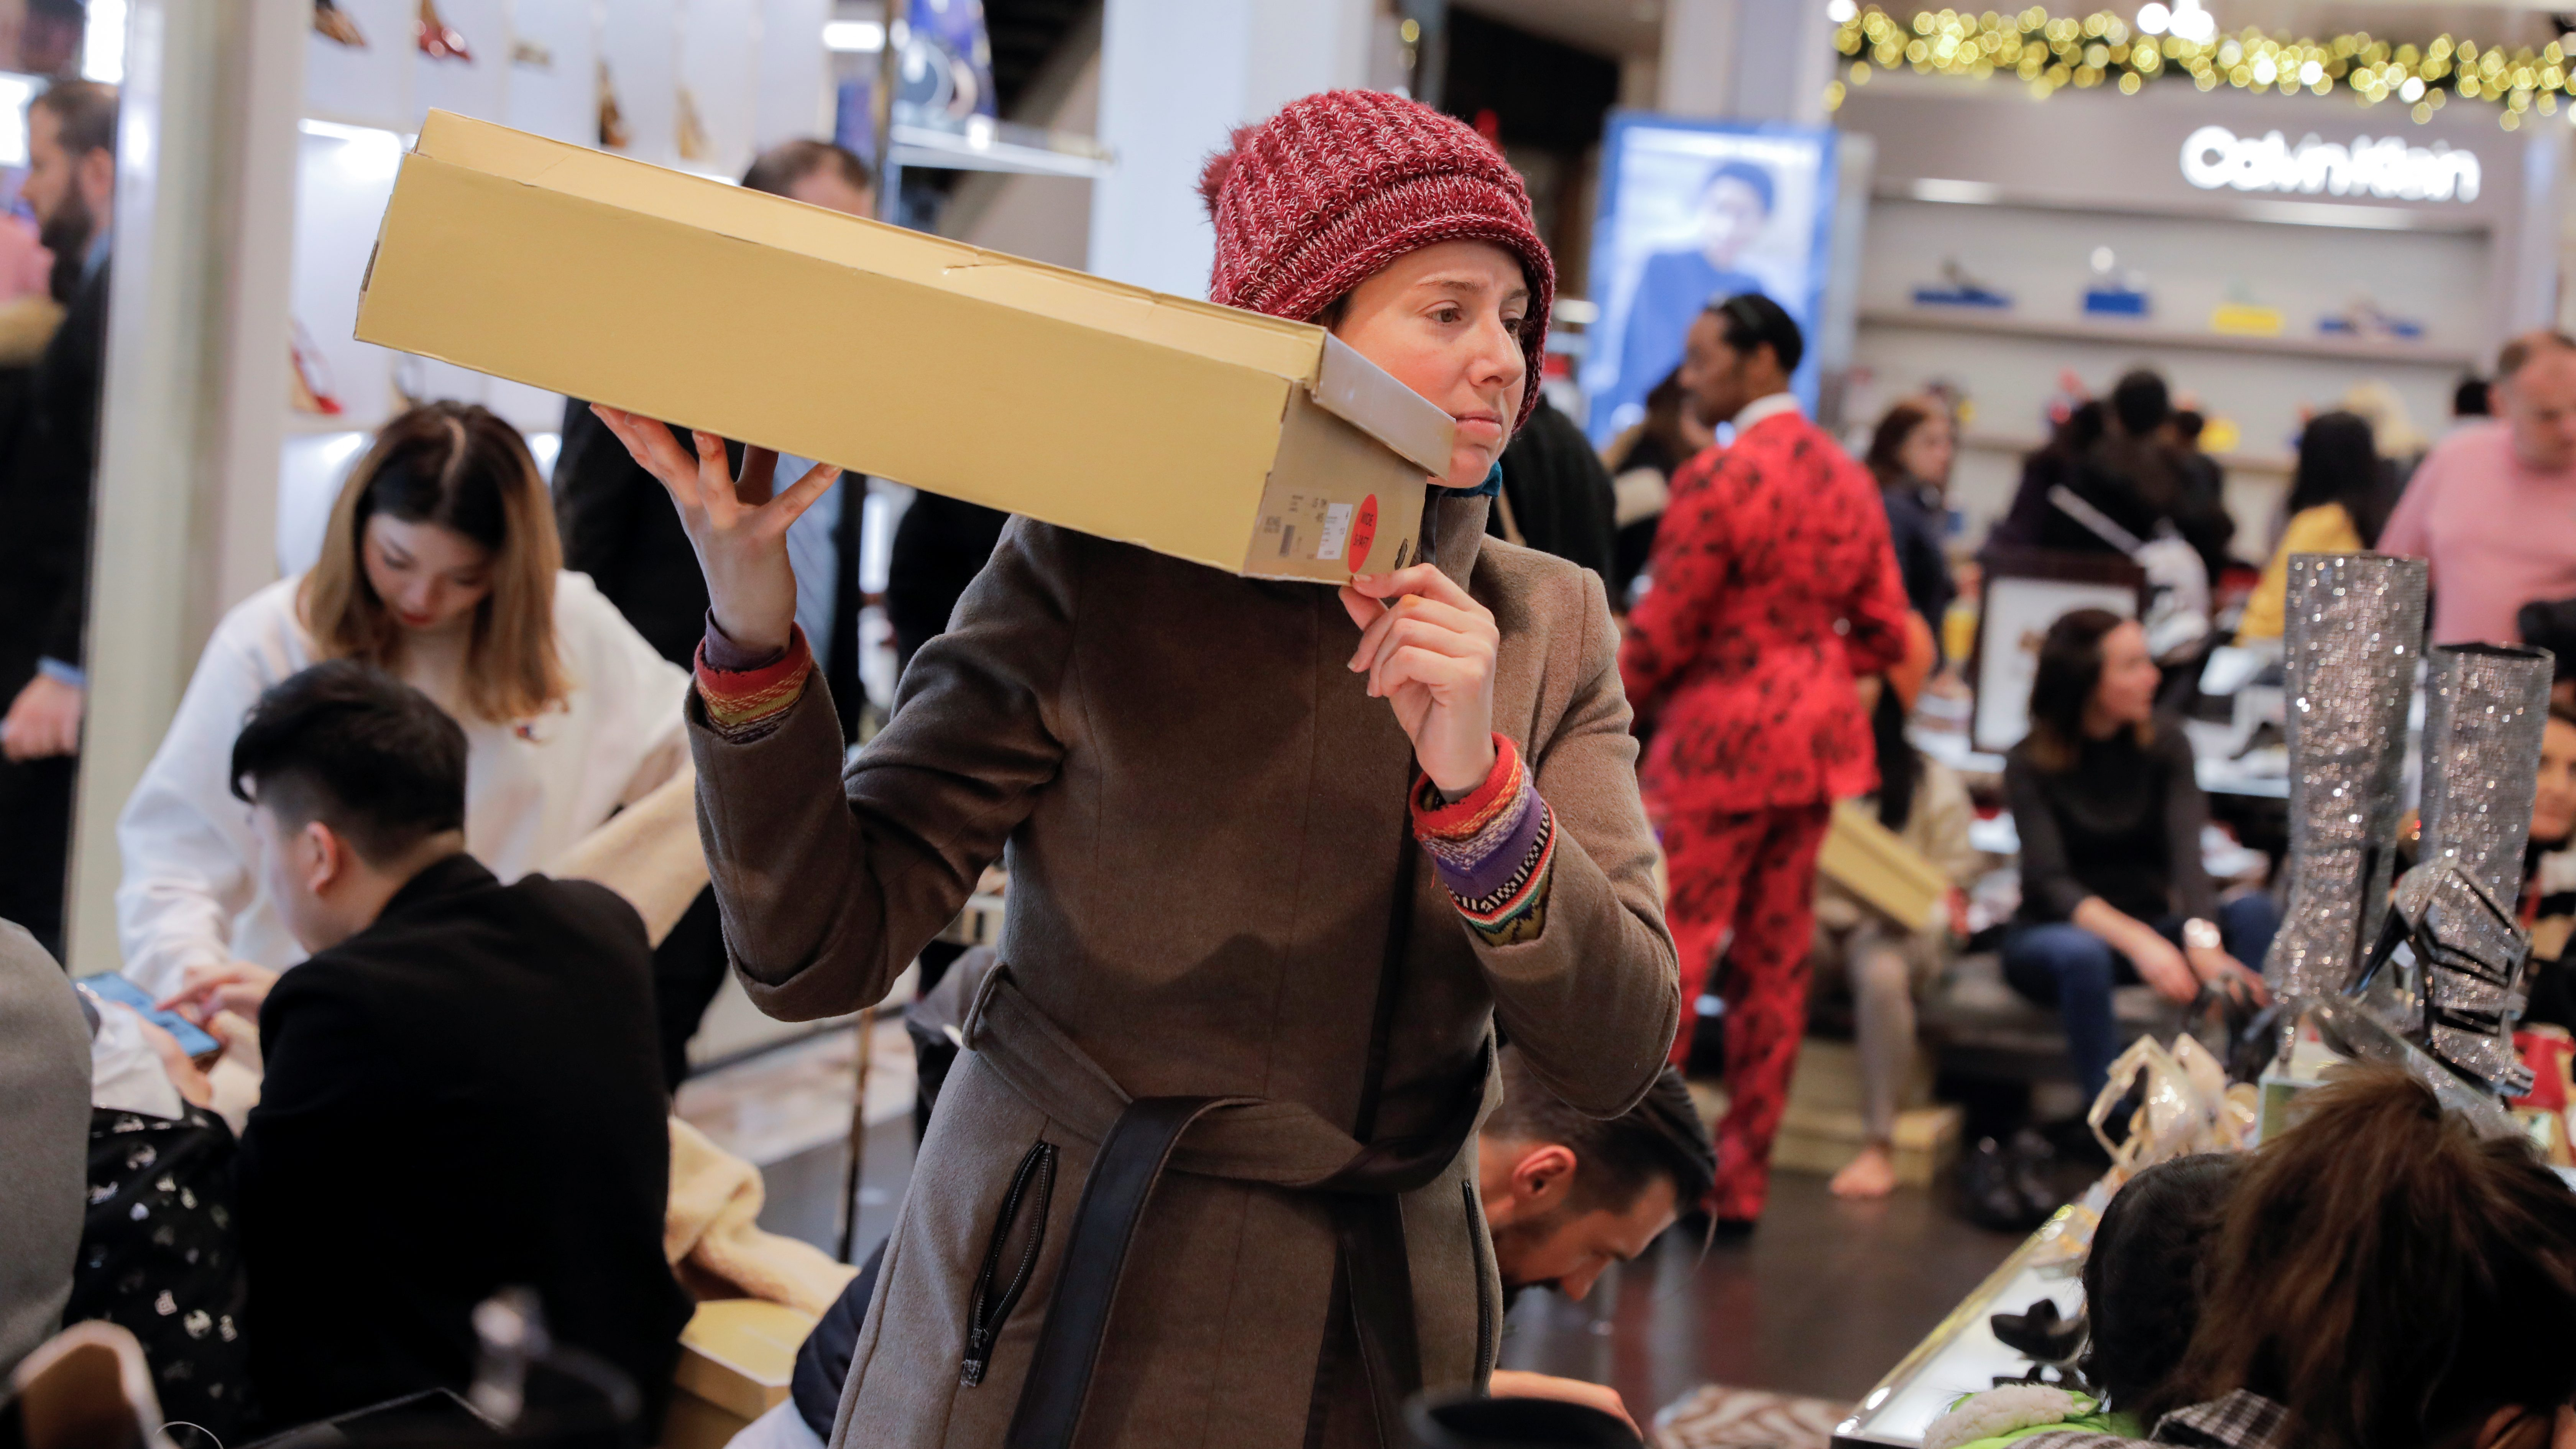 A woman holds a box aloft amid a sea of holiday shoppers at a Macy's department store.